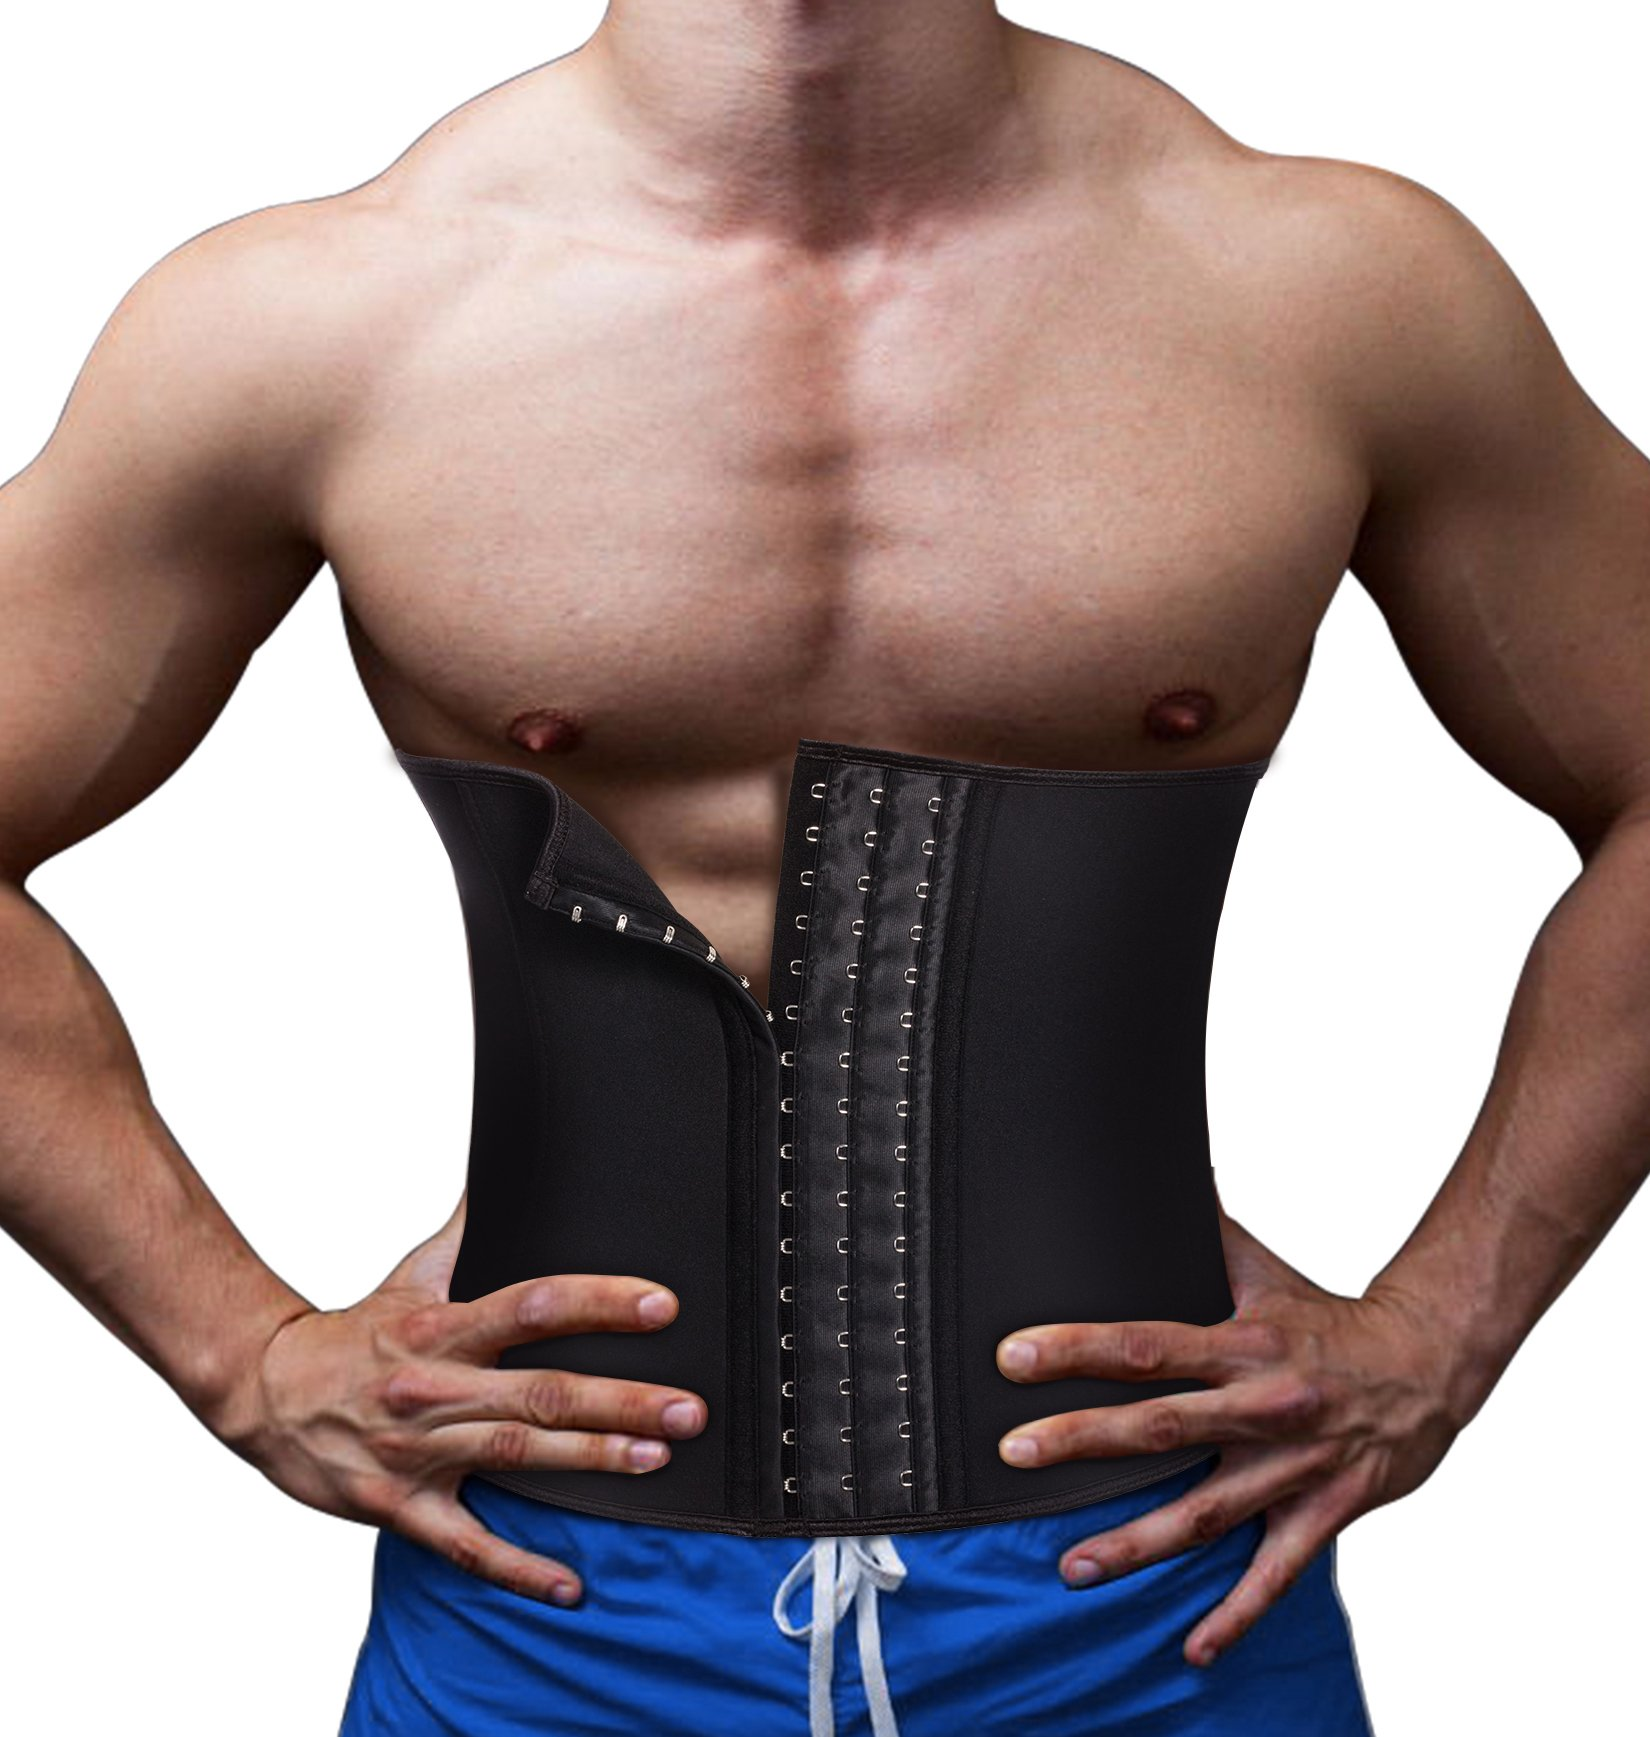 TAILONG Slimming Underwear Body Shaper Waist Trainer Belt Men Workout Back Support Trimmer for Weight Loss (Black, L)